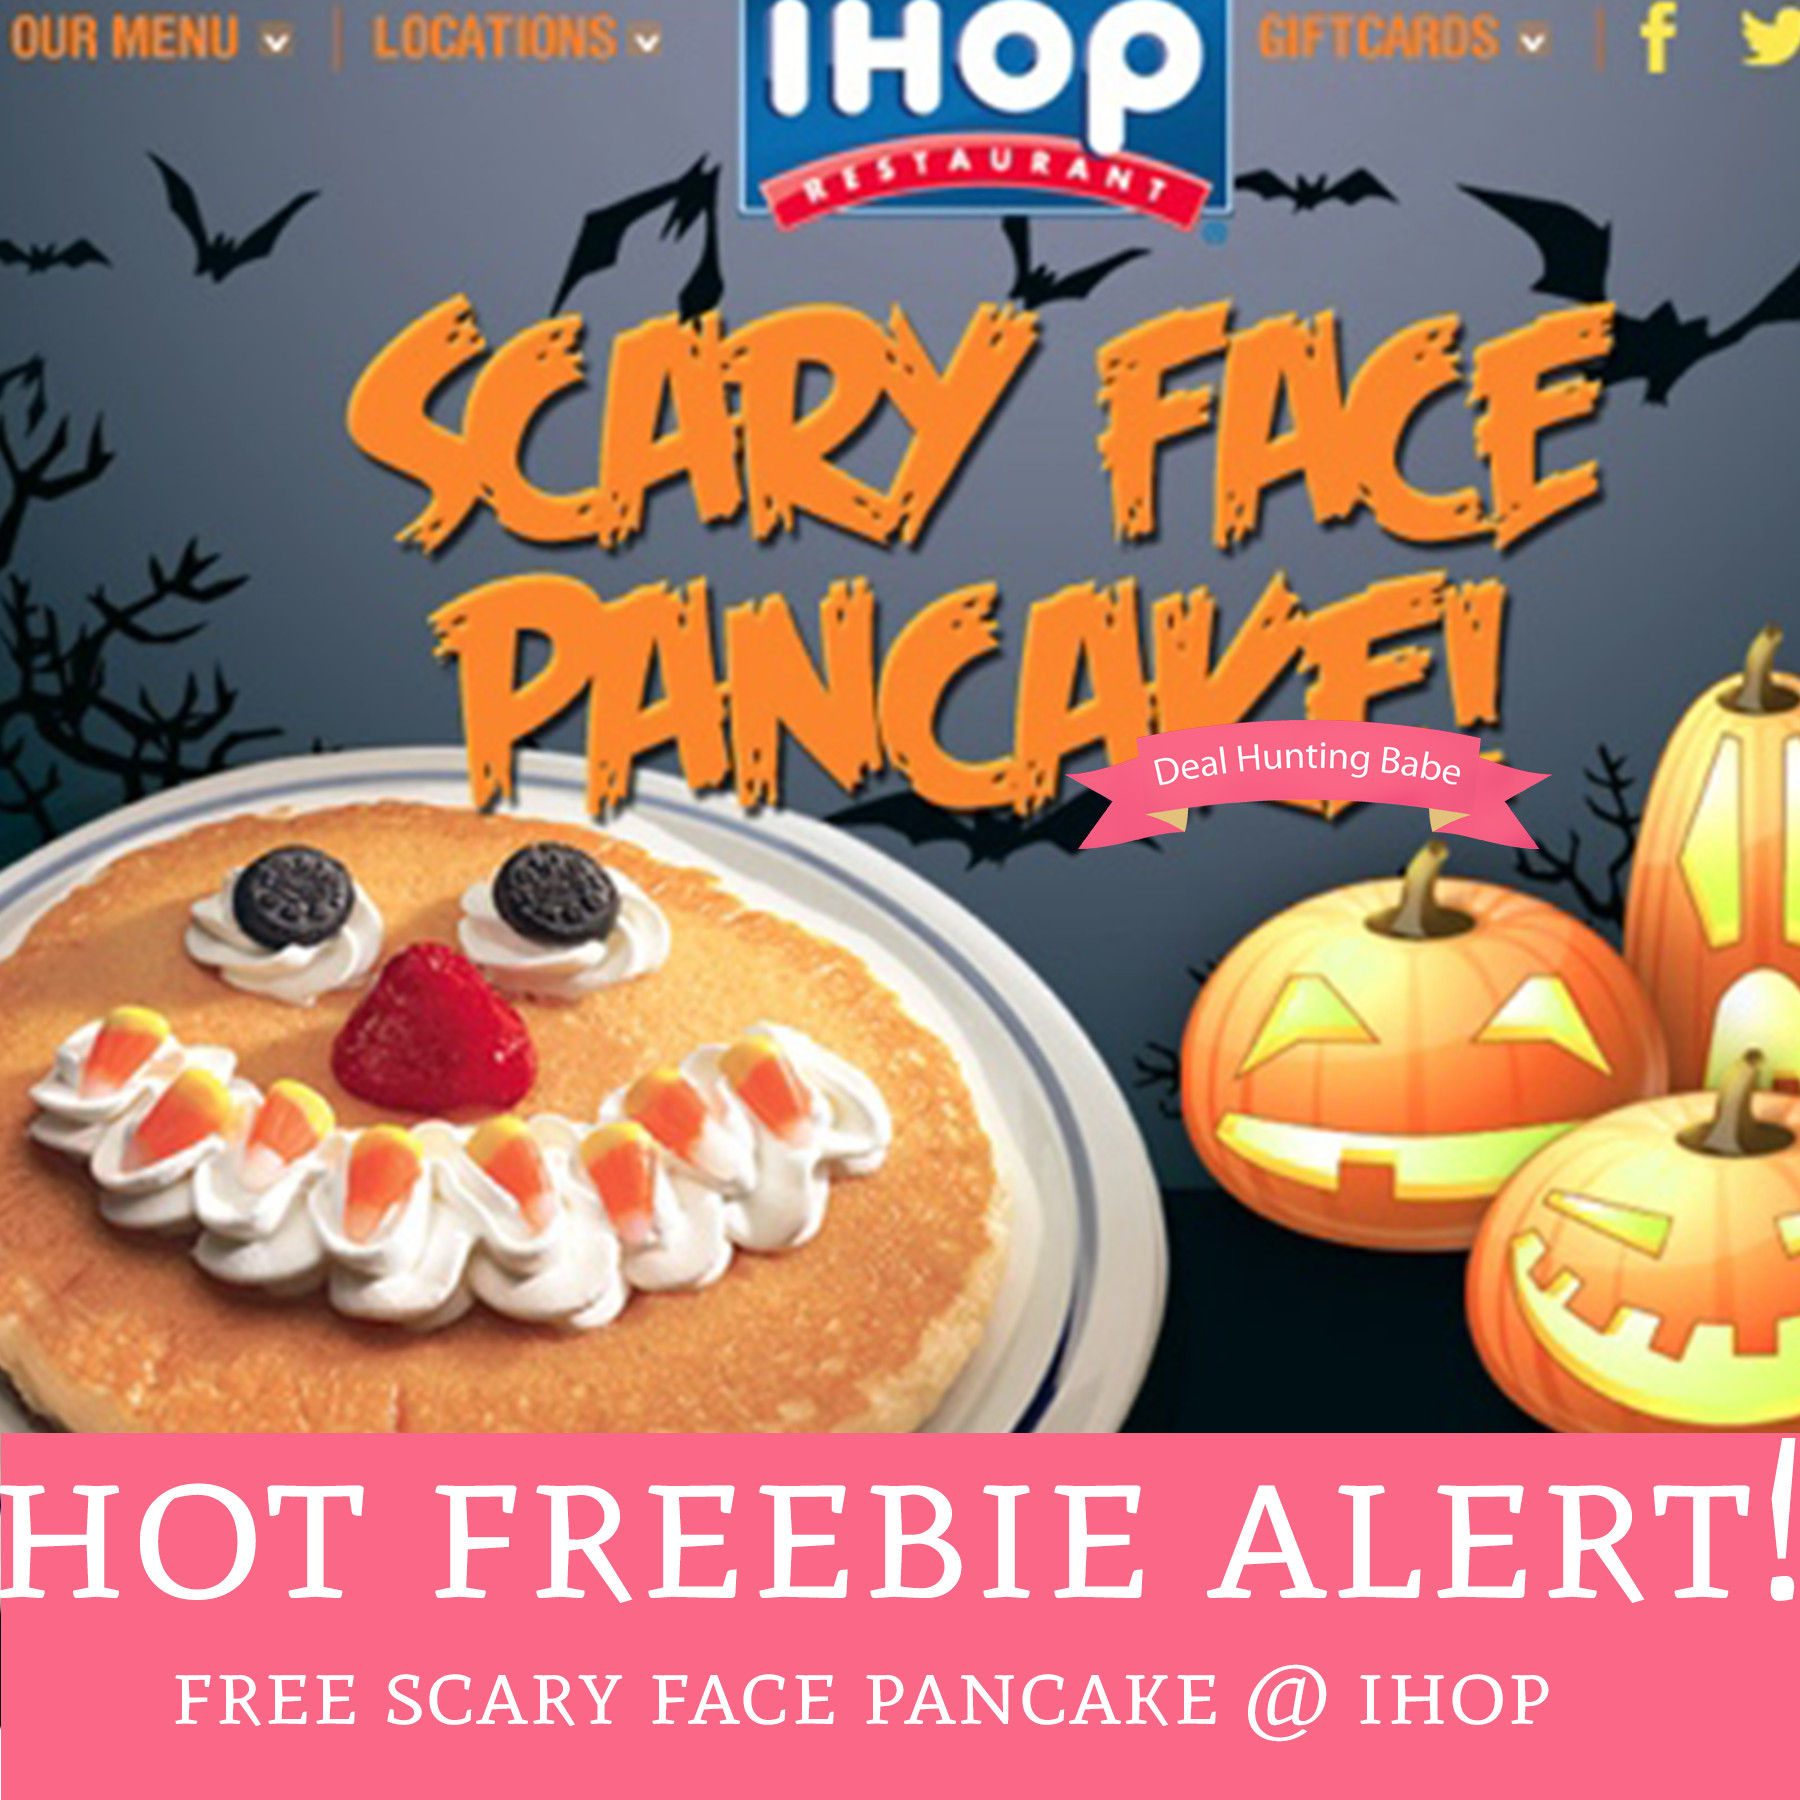 Ihop Halloween Free Pancakes 2019  FREE Scary Face Pancakes IHOP Deal Hunting Babe